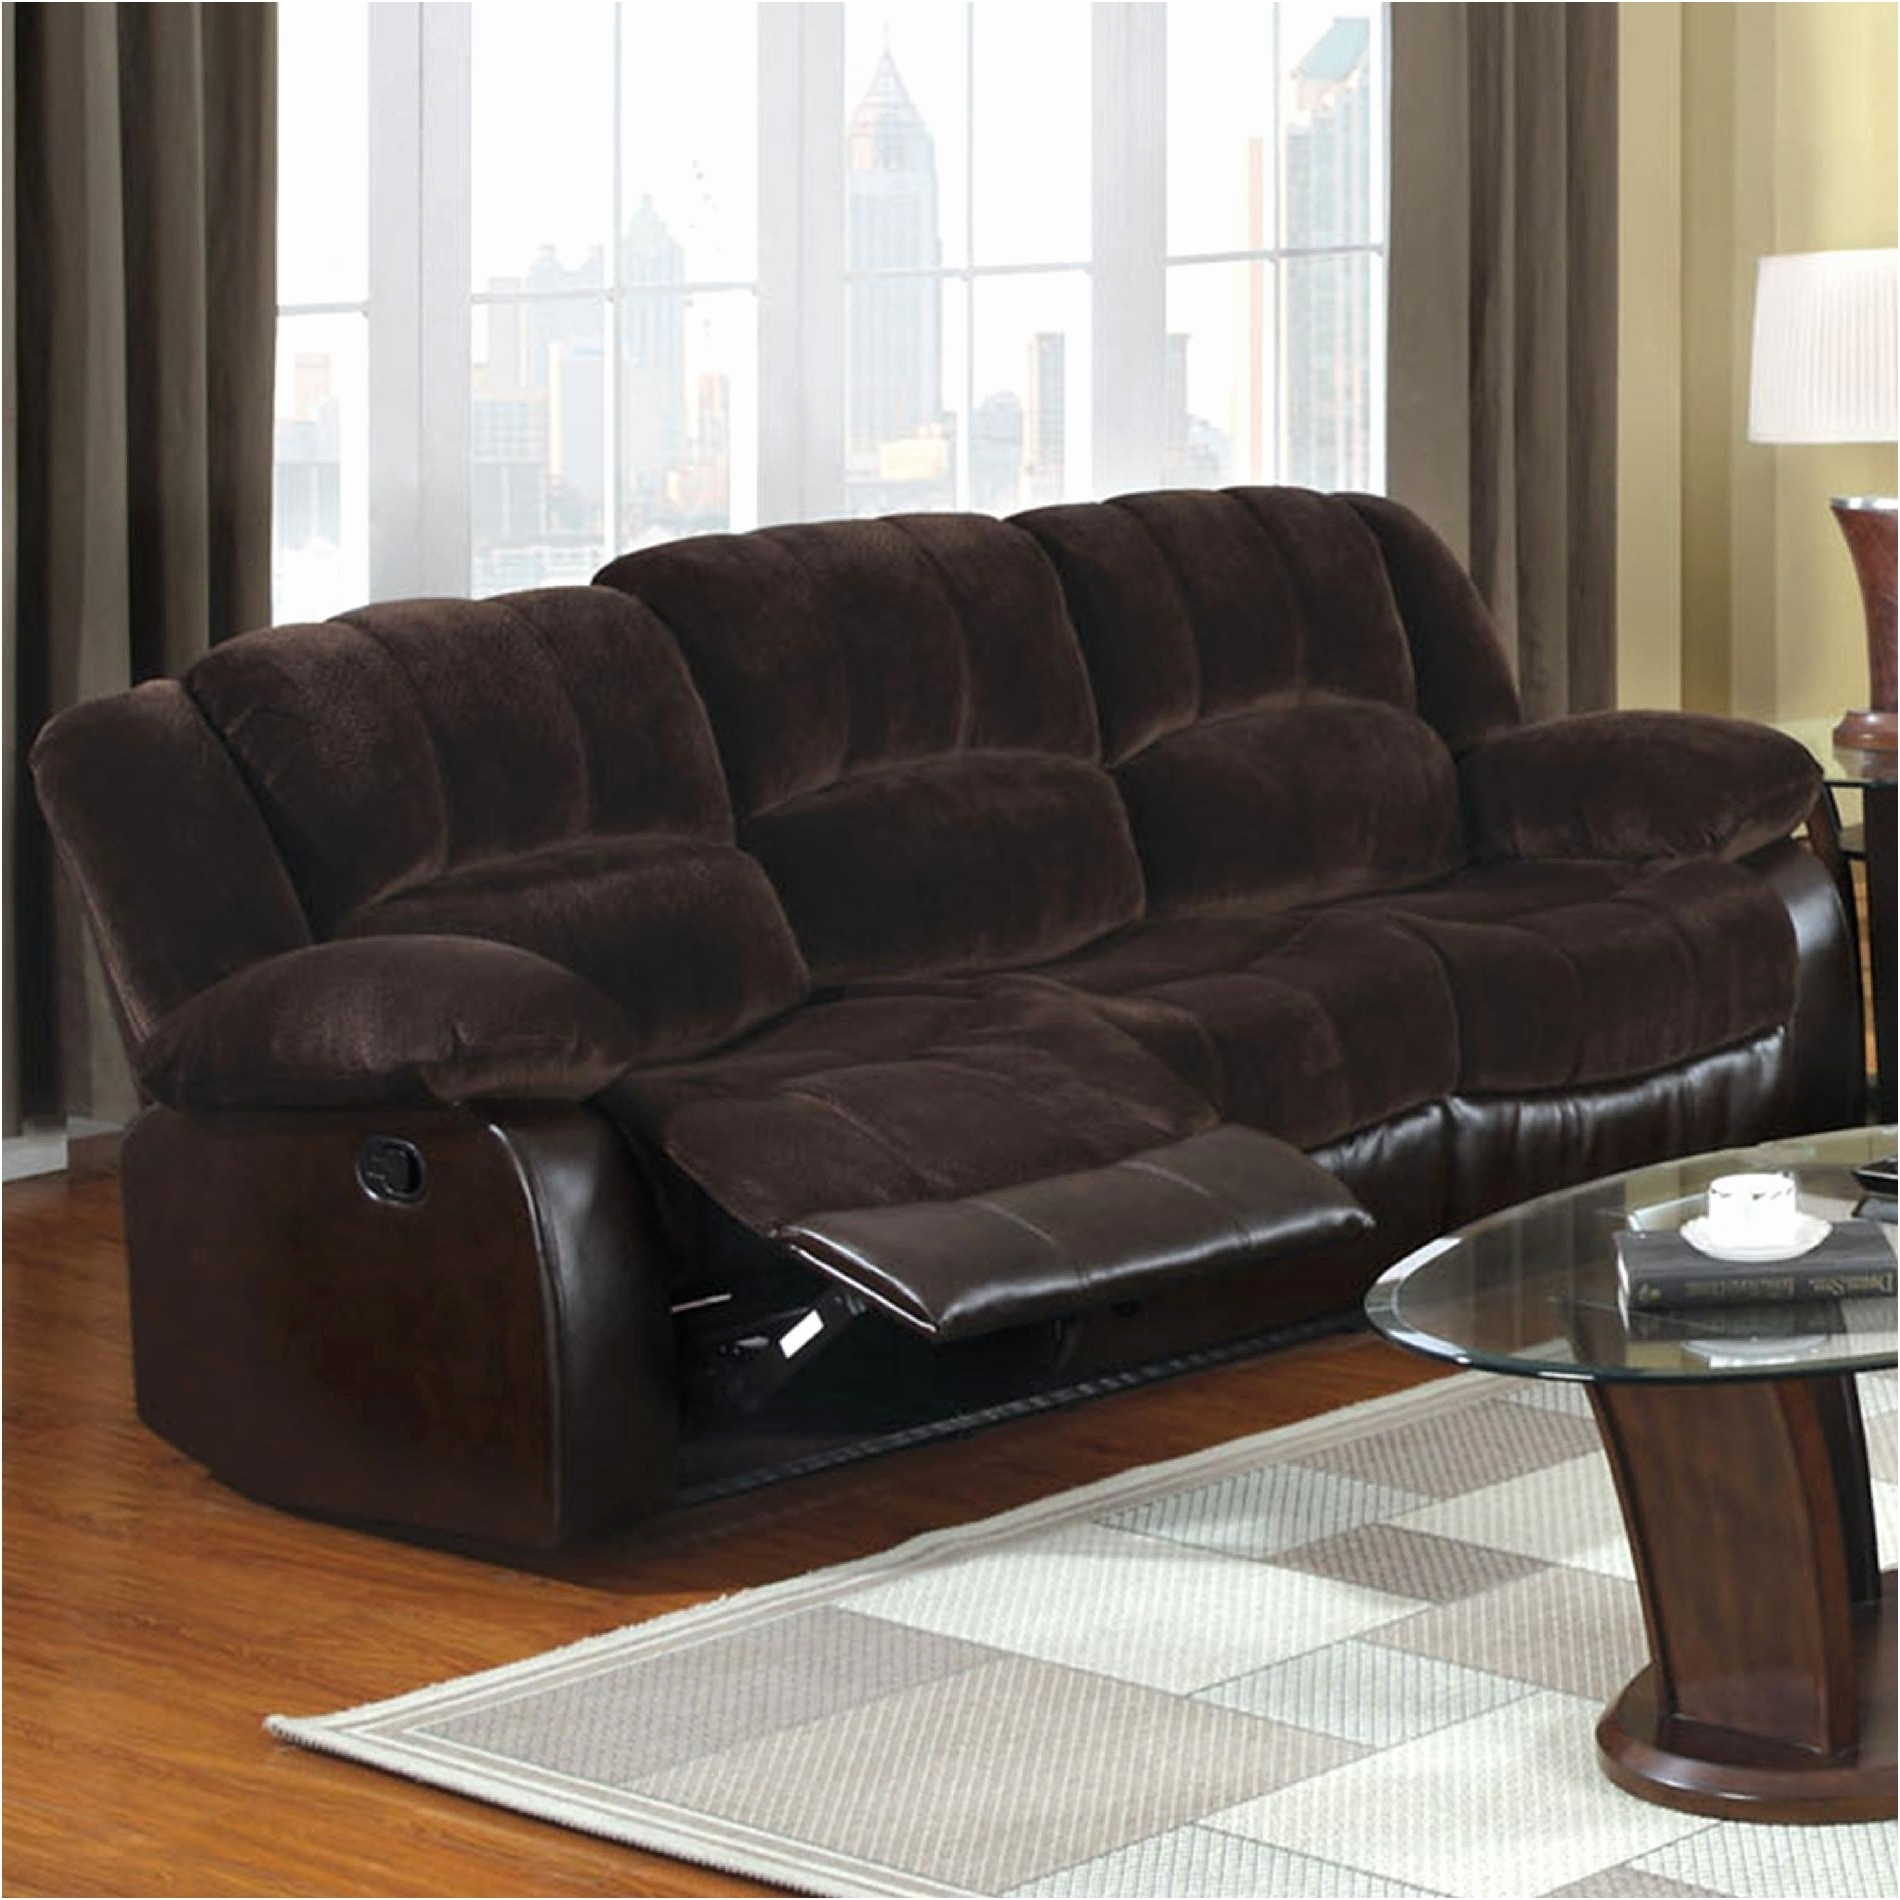 Fresh Sears Leather Sofa New – Intuisiblog Within Sectional Sofas At Sears (View 6 of 10)